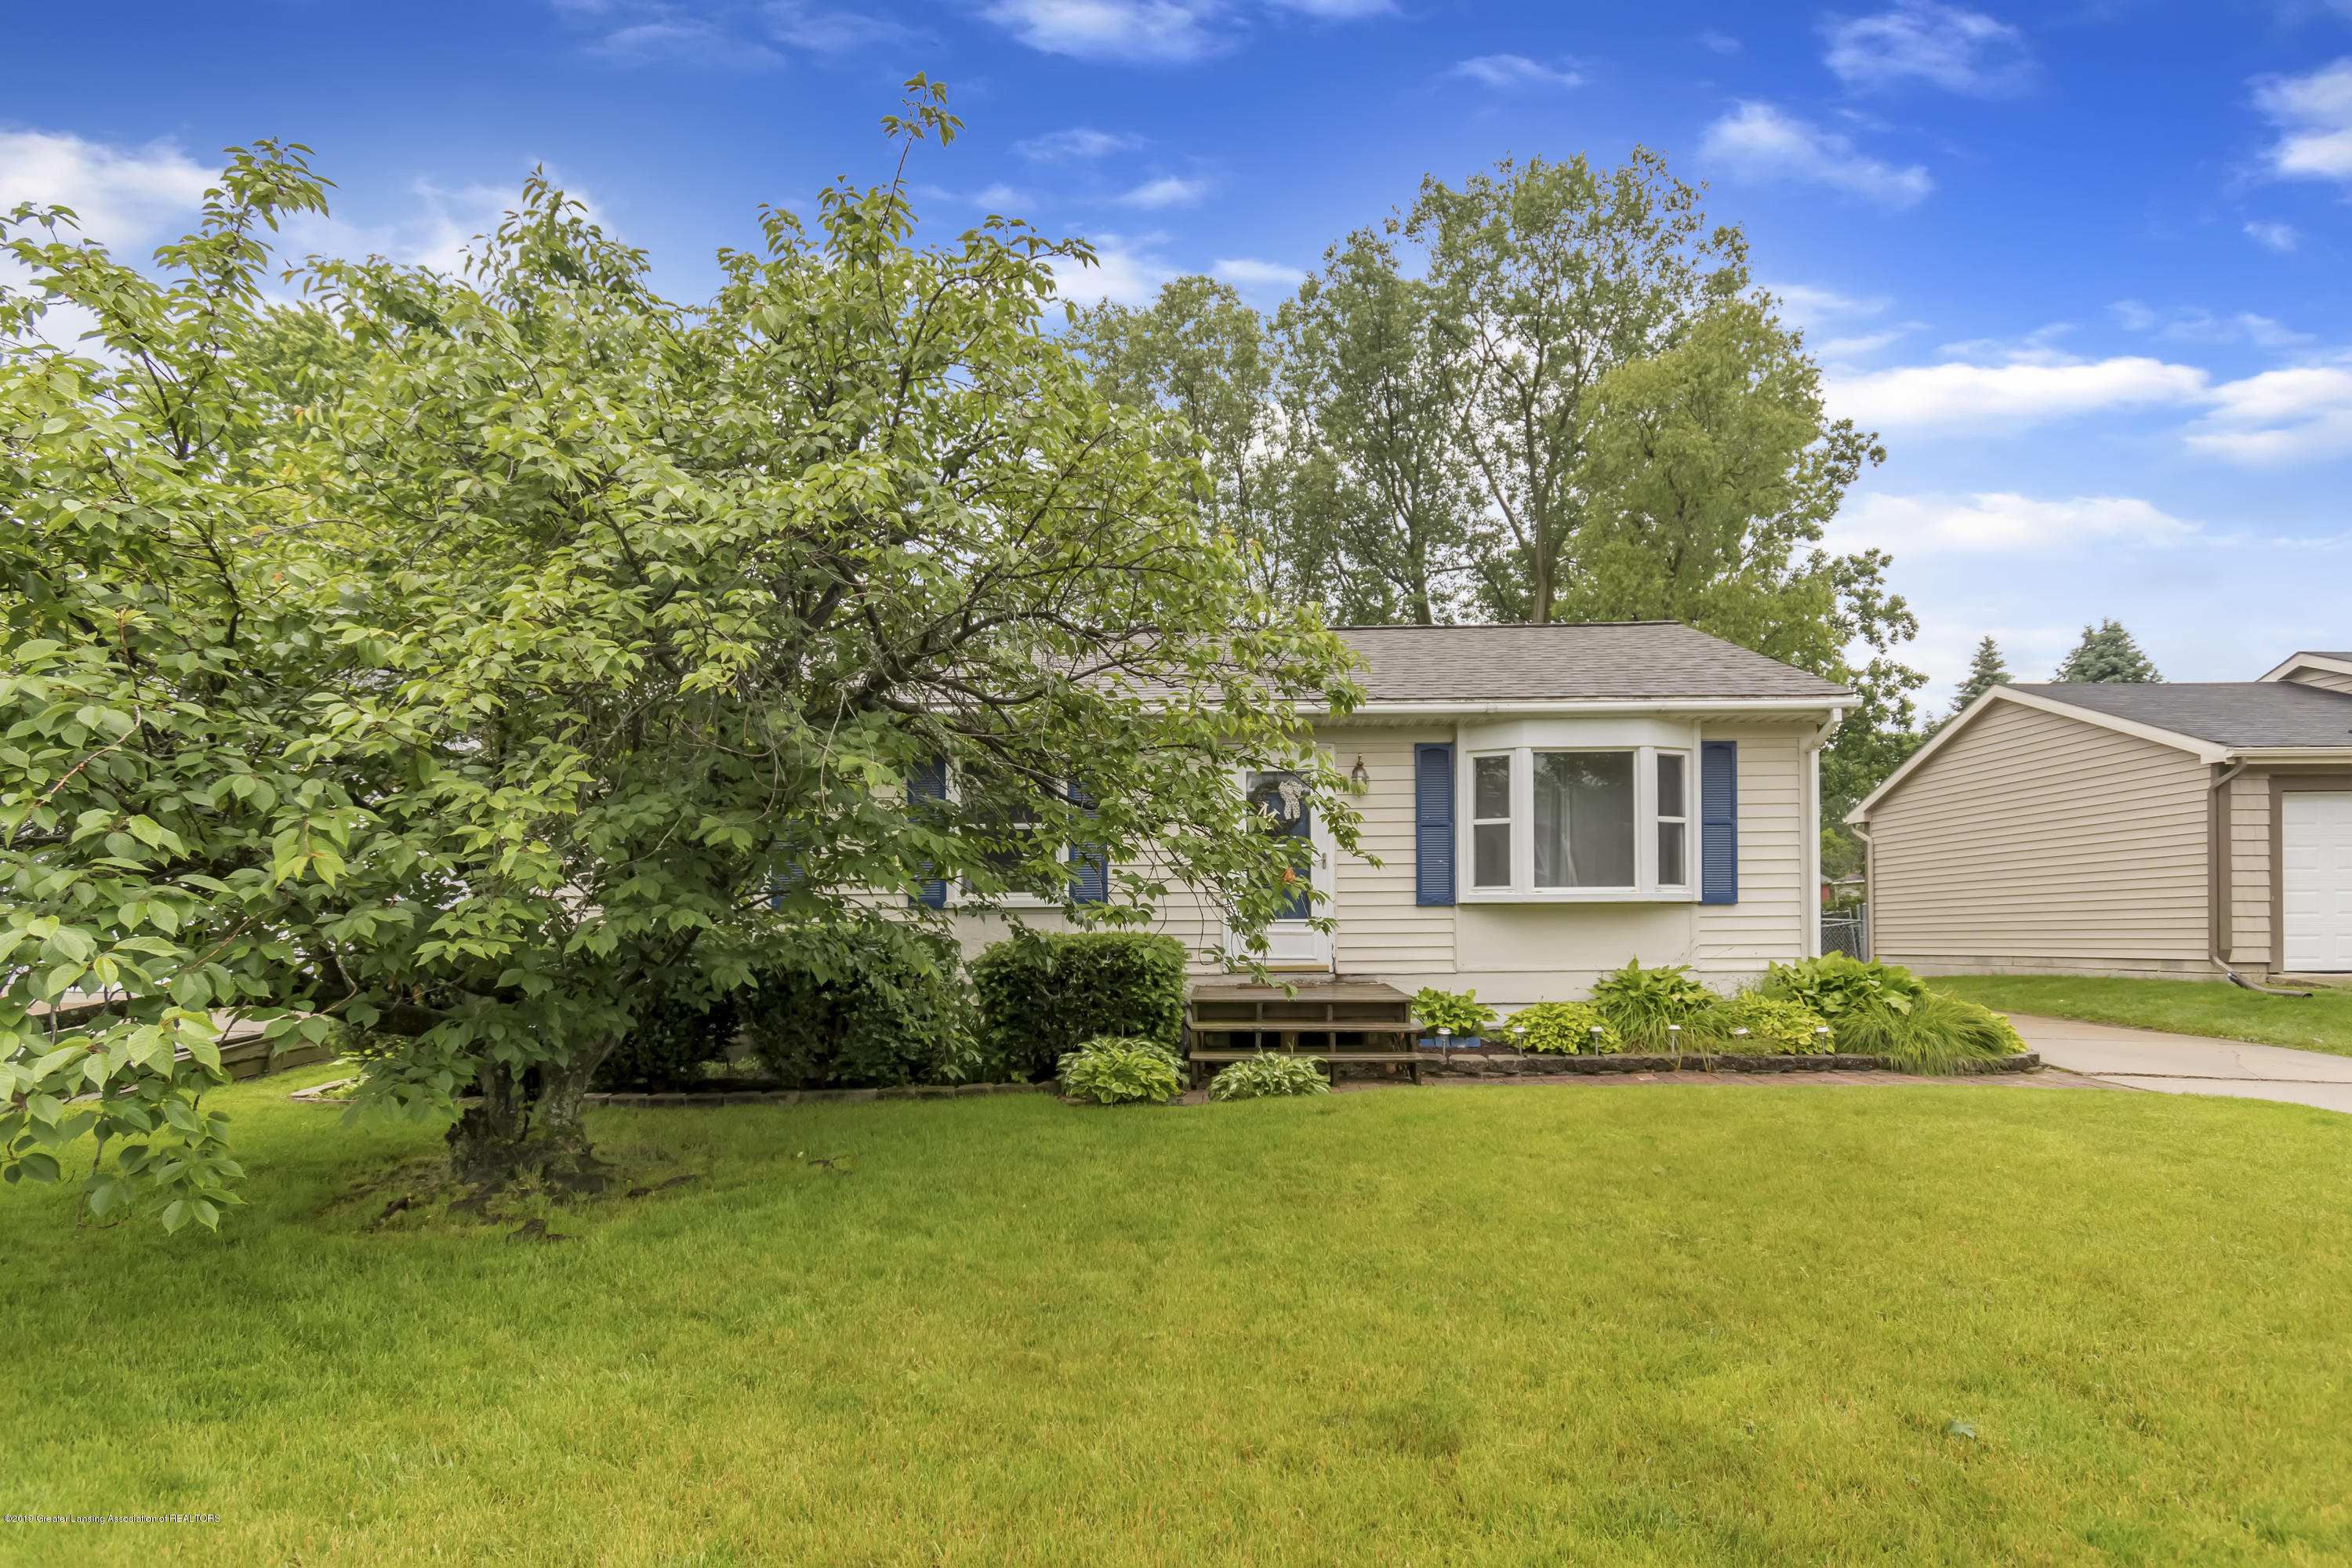 5736 Coulson Ct - 5736-Coulson-Ct-Lansing-MI-windowstill-3 - 3